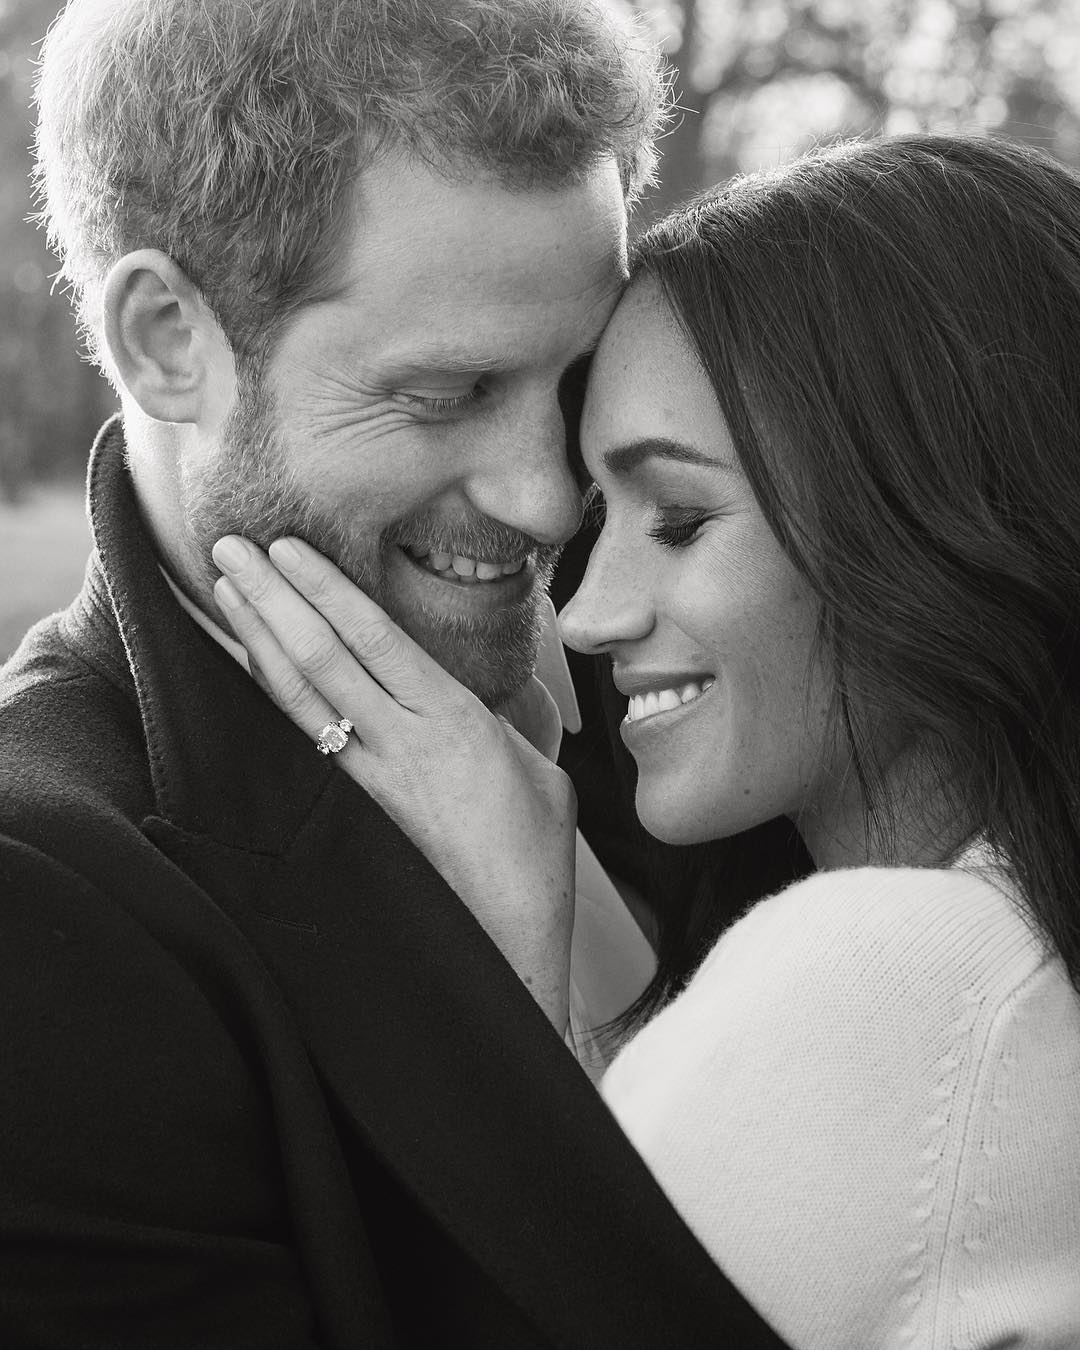 9 Ways To Have An Ethical Wedding à la Meghan Markle